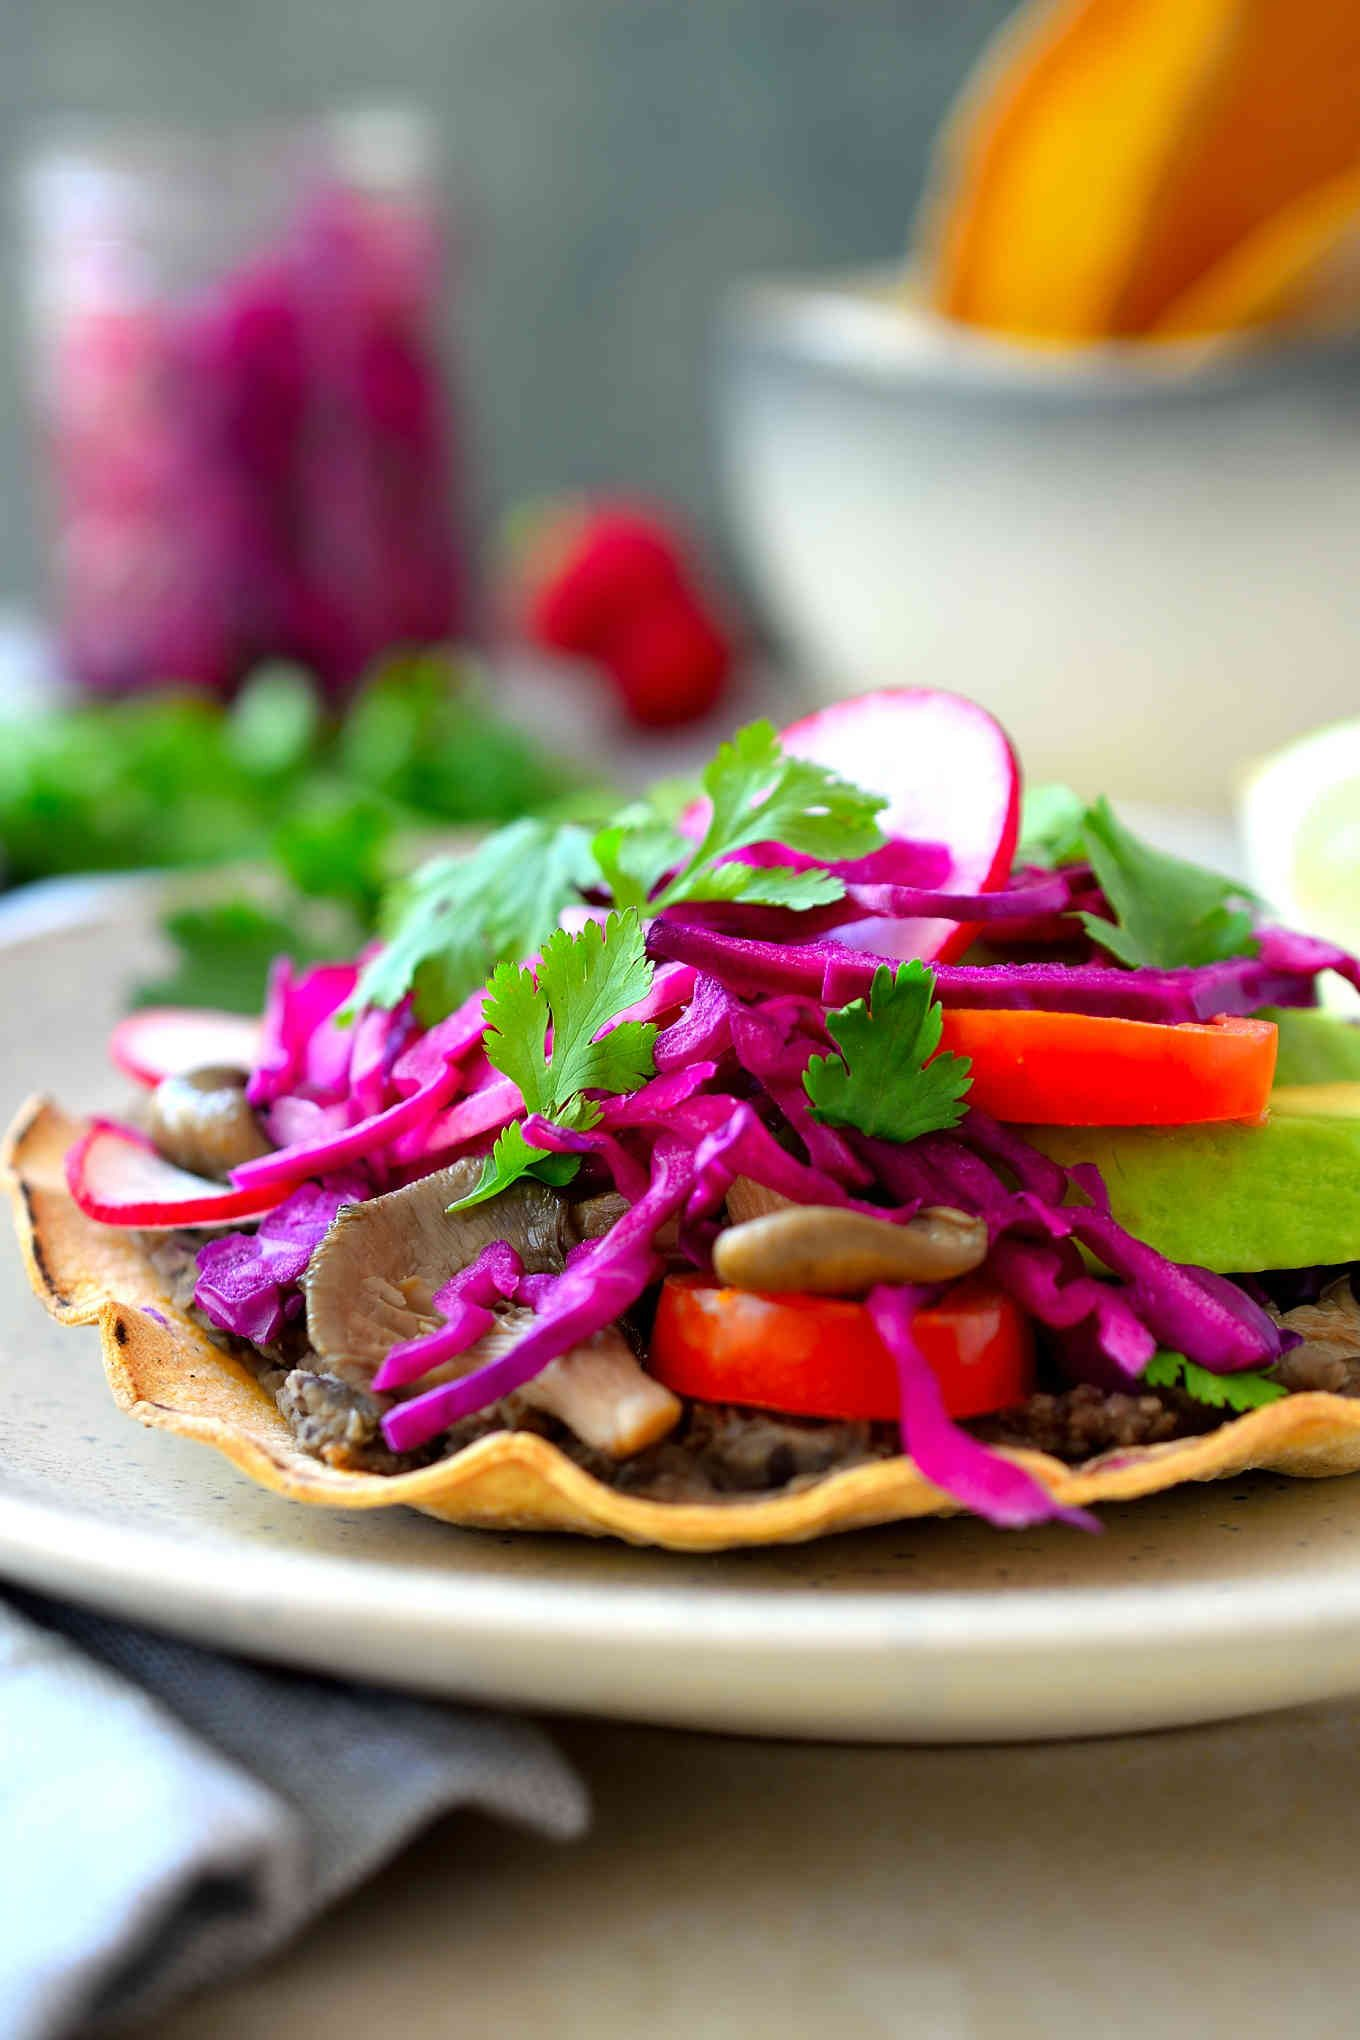 Black bean and mushroom vegan tostadas are baked rather than fried for a super healthy, hearty appetizer or entree!